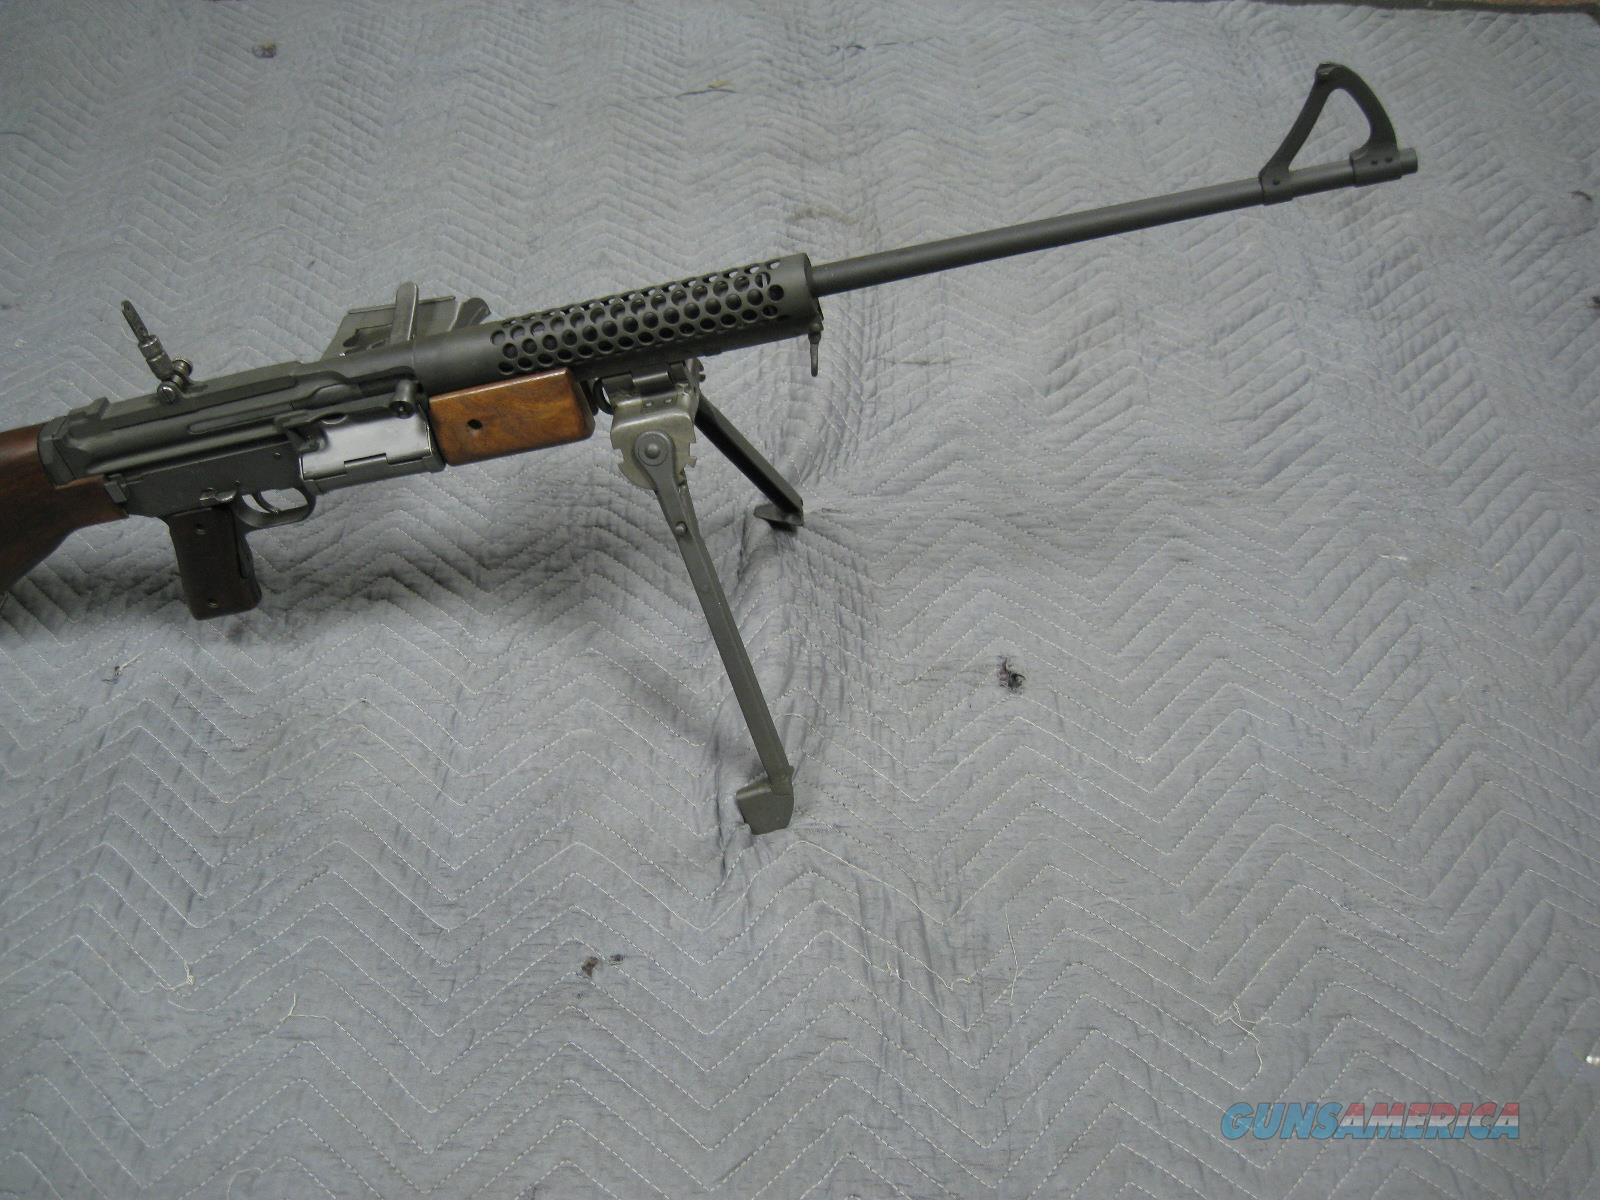 1941 Johnson m1941 Light machine gun (semi-auto)